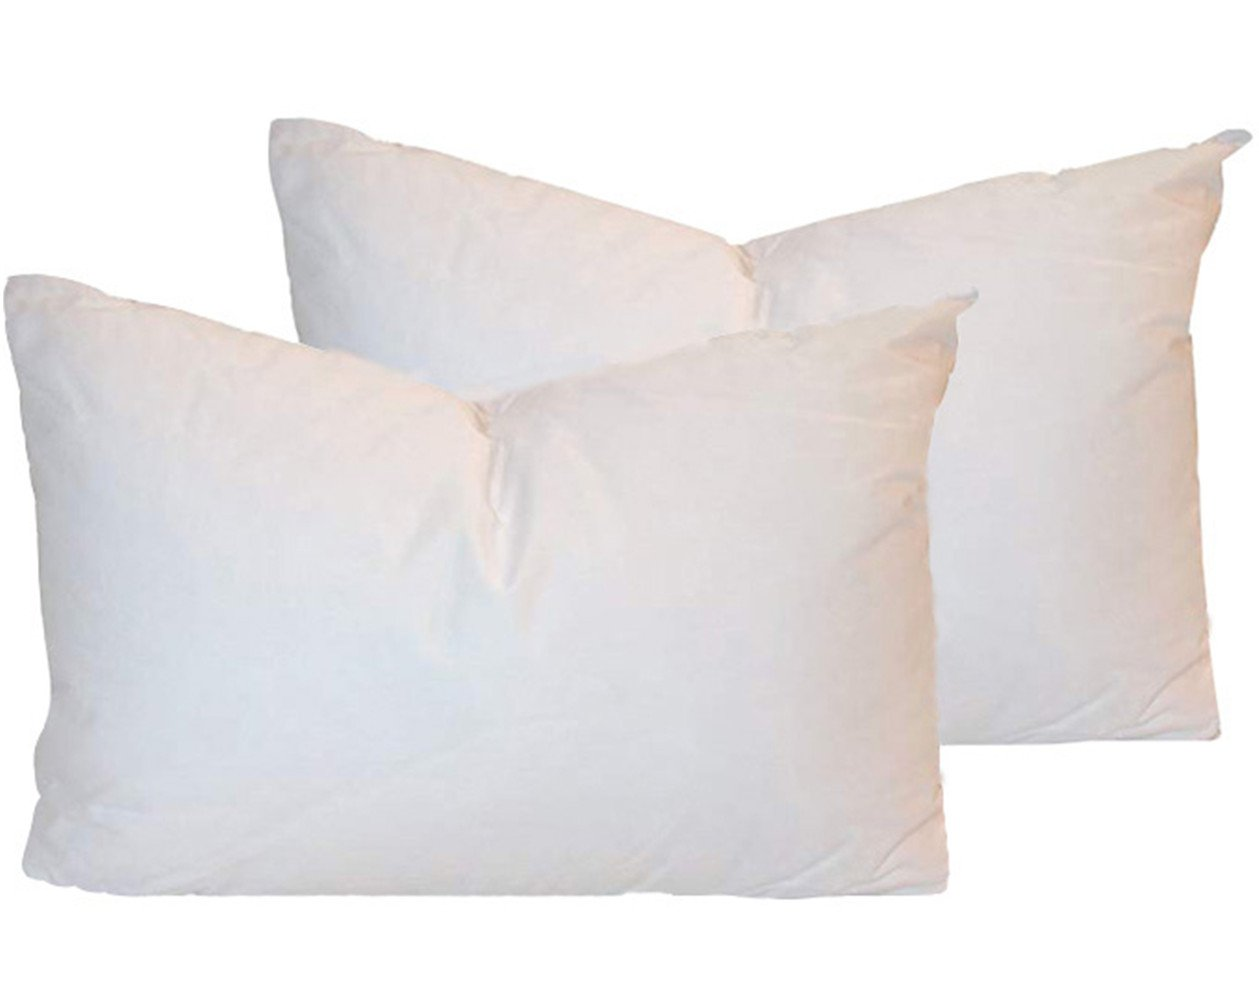 NikiCains Down and Feather Square Pillow Insert Cotton Fabric Throw Pillows Sham Stuffer 12' 20'